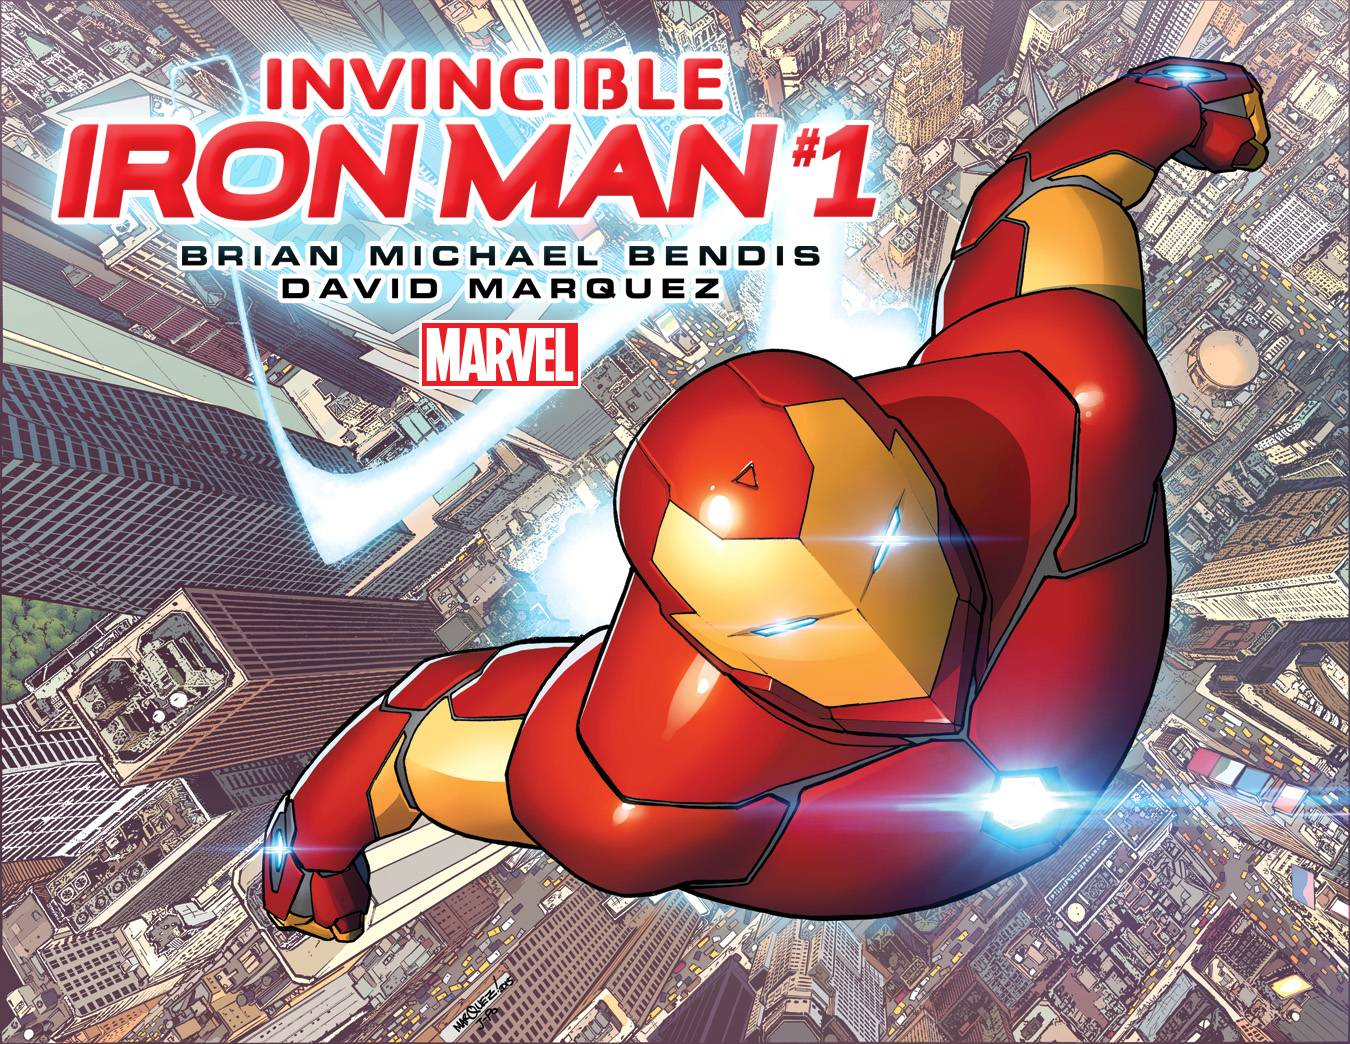 Invinceable Iron Man #1